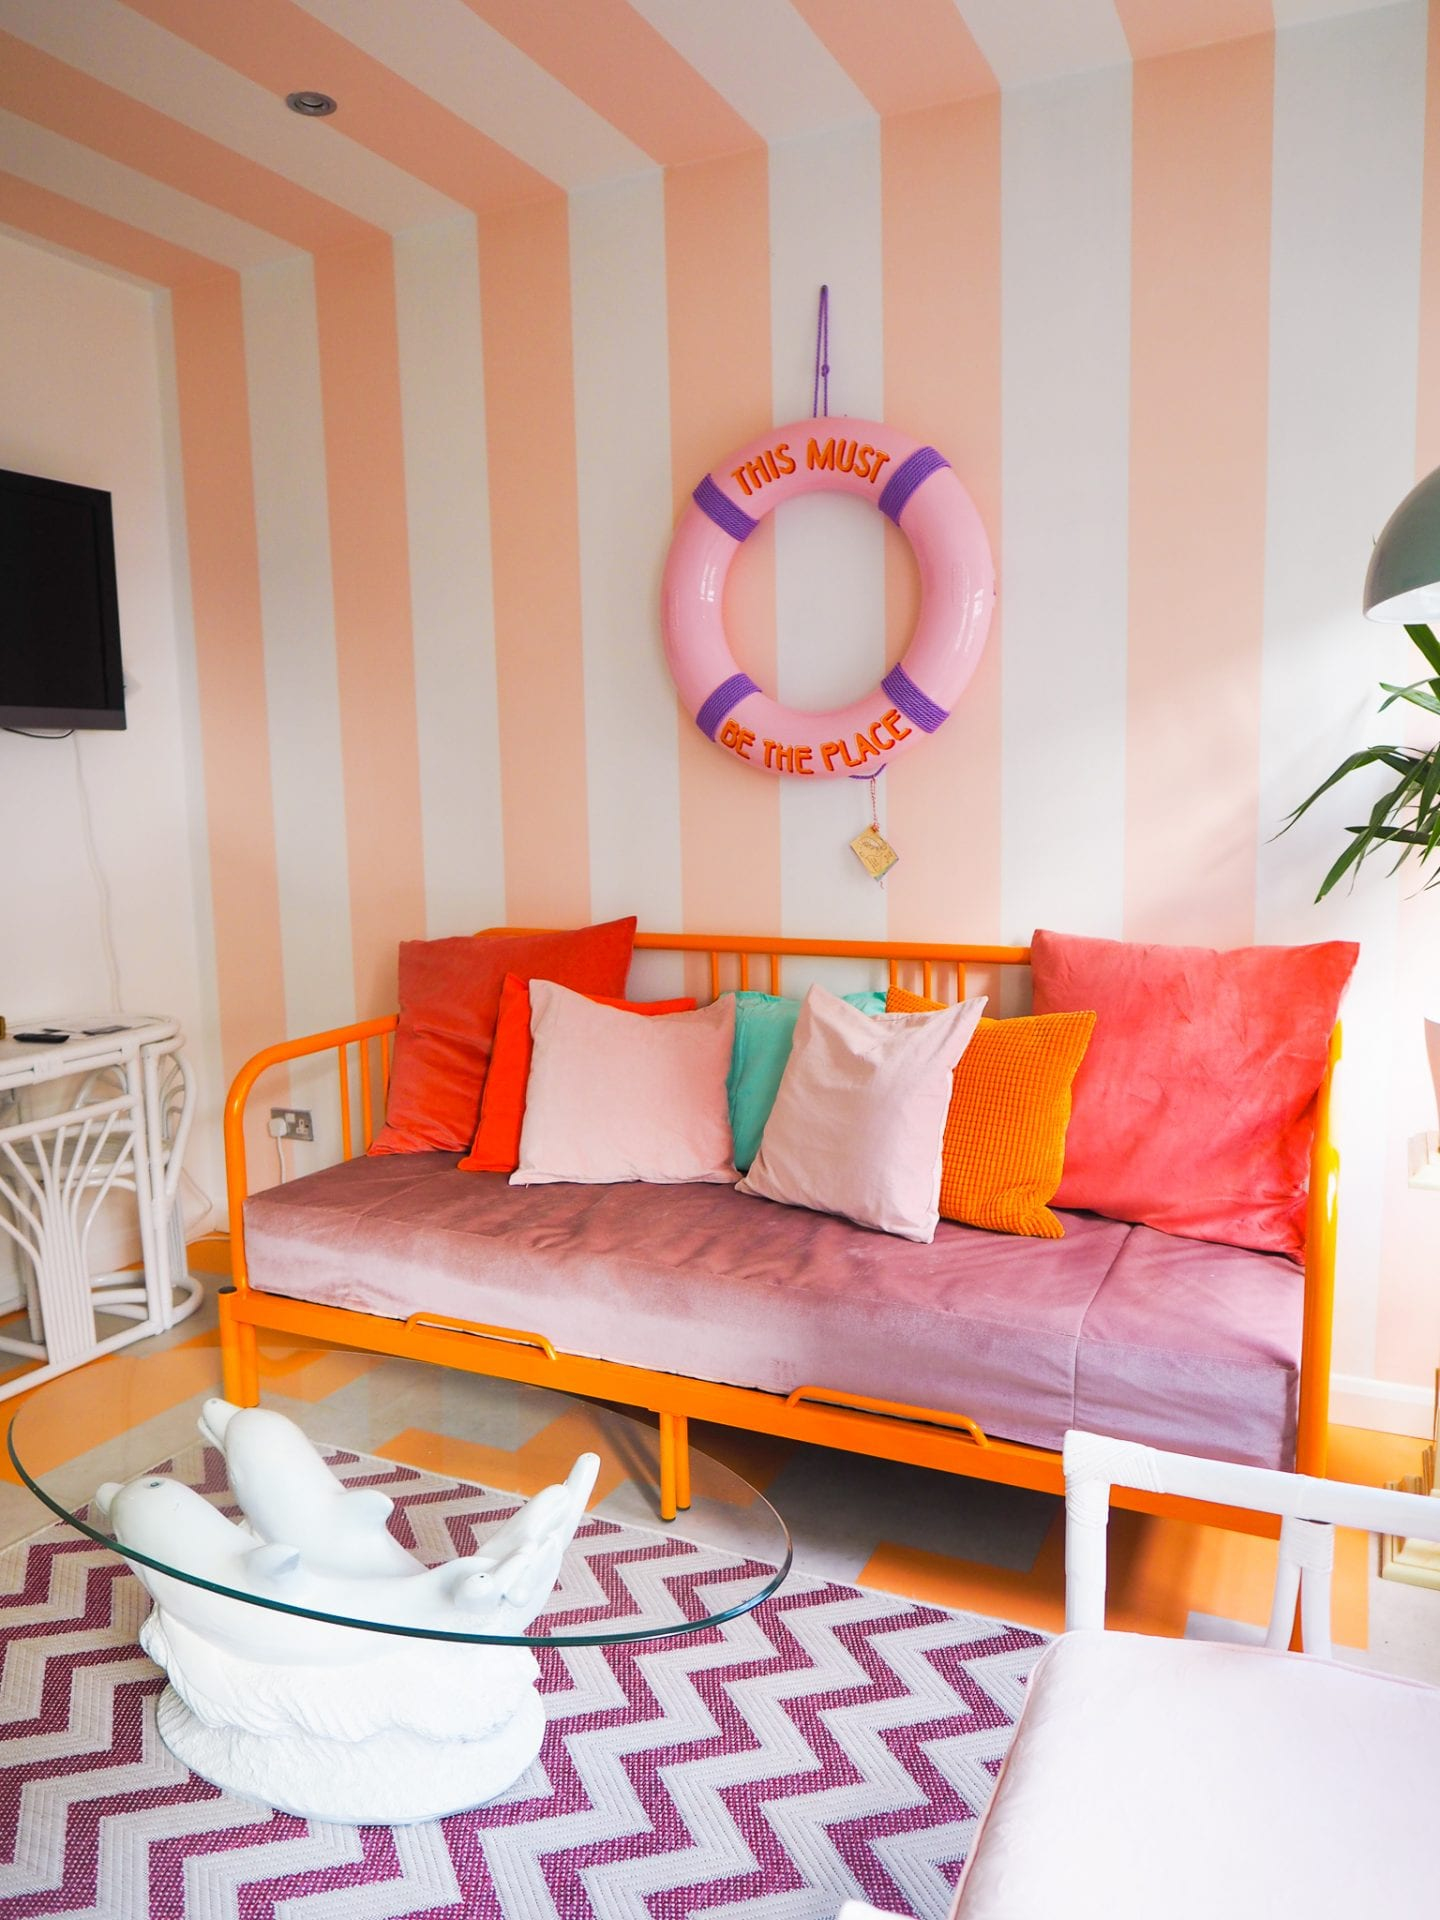 Margate-suites-hotel-airbnb-holiday-cottage-orange-sofa-bed-pink-and-white-striped-walls